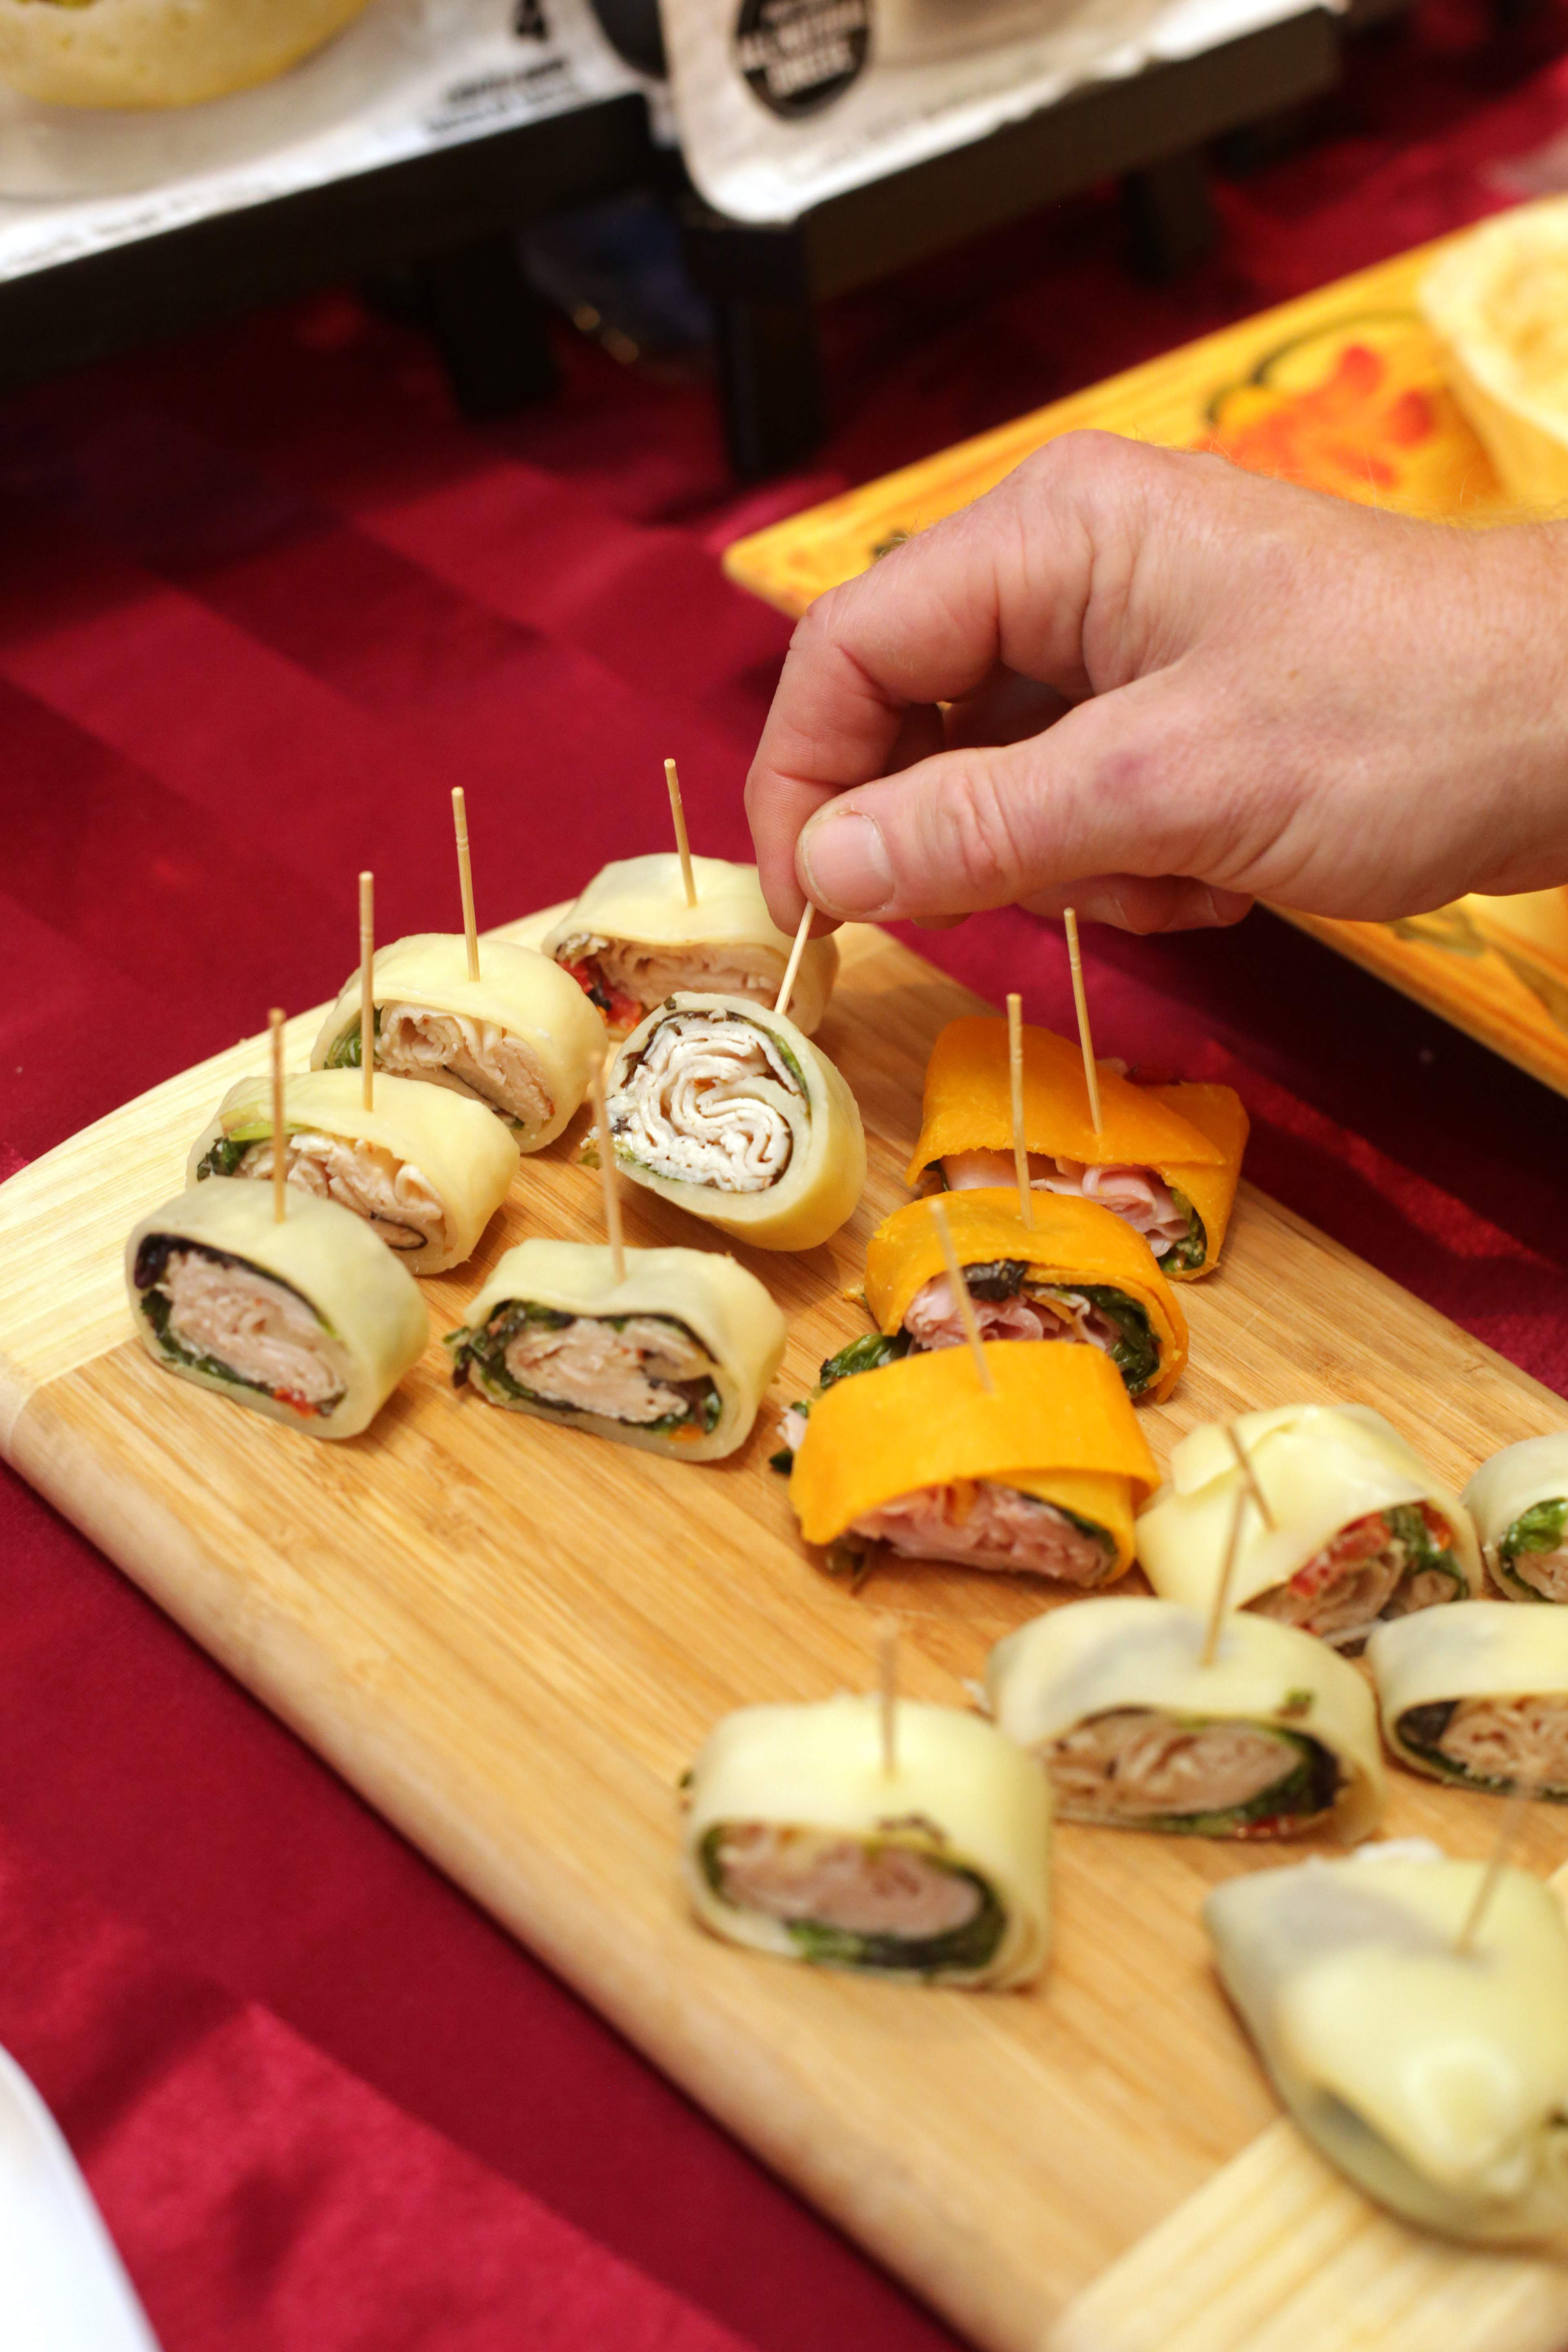 They may look like wraps, but this is cheese! Samples from the 2016 FoodBizNJ event.